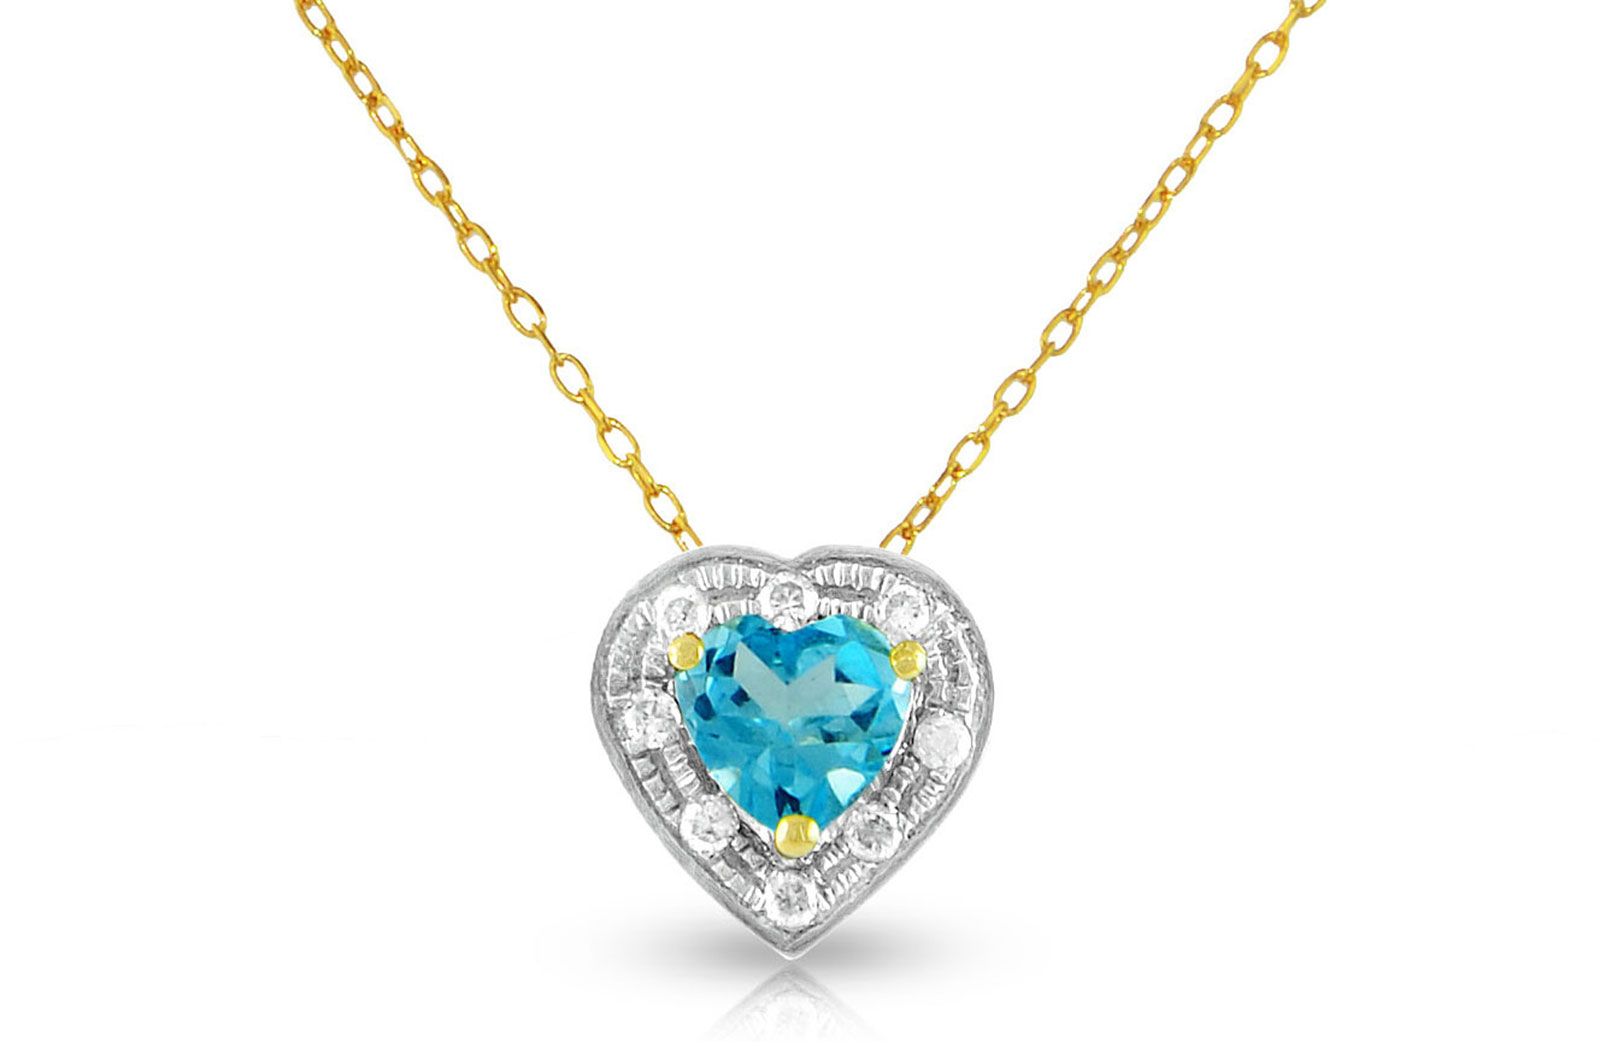 Vera Perla 18K Solid Gold and 0.08Cts Diamonds and 5mm Genuine Swiss Blue Topaz Heart Necklace